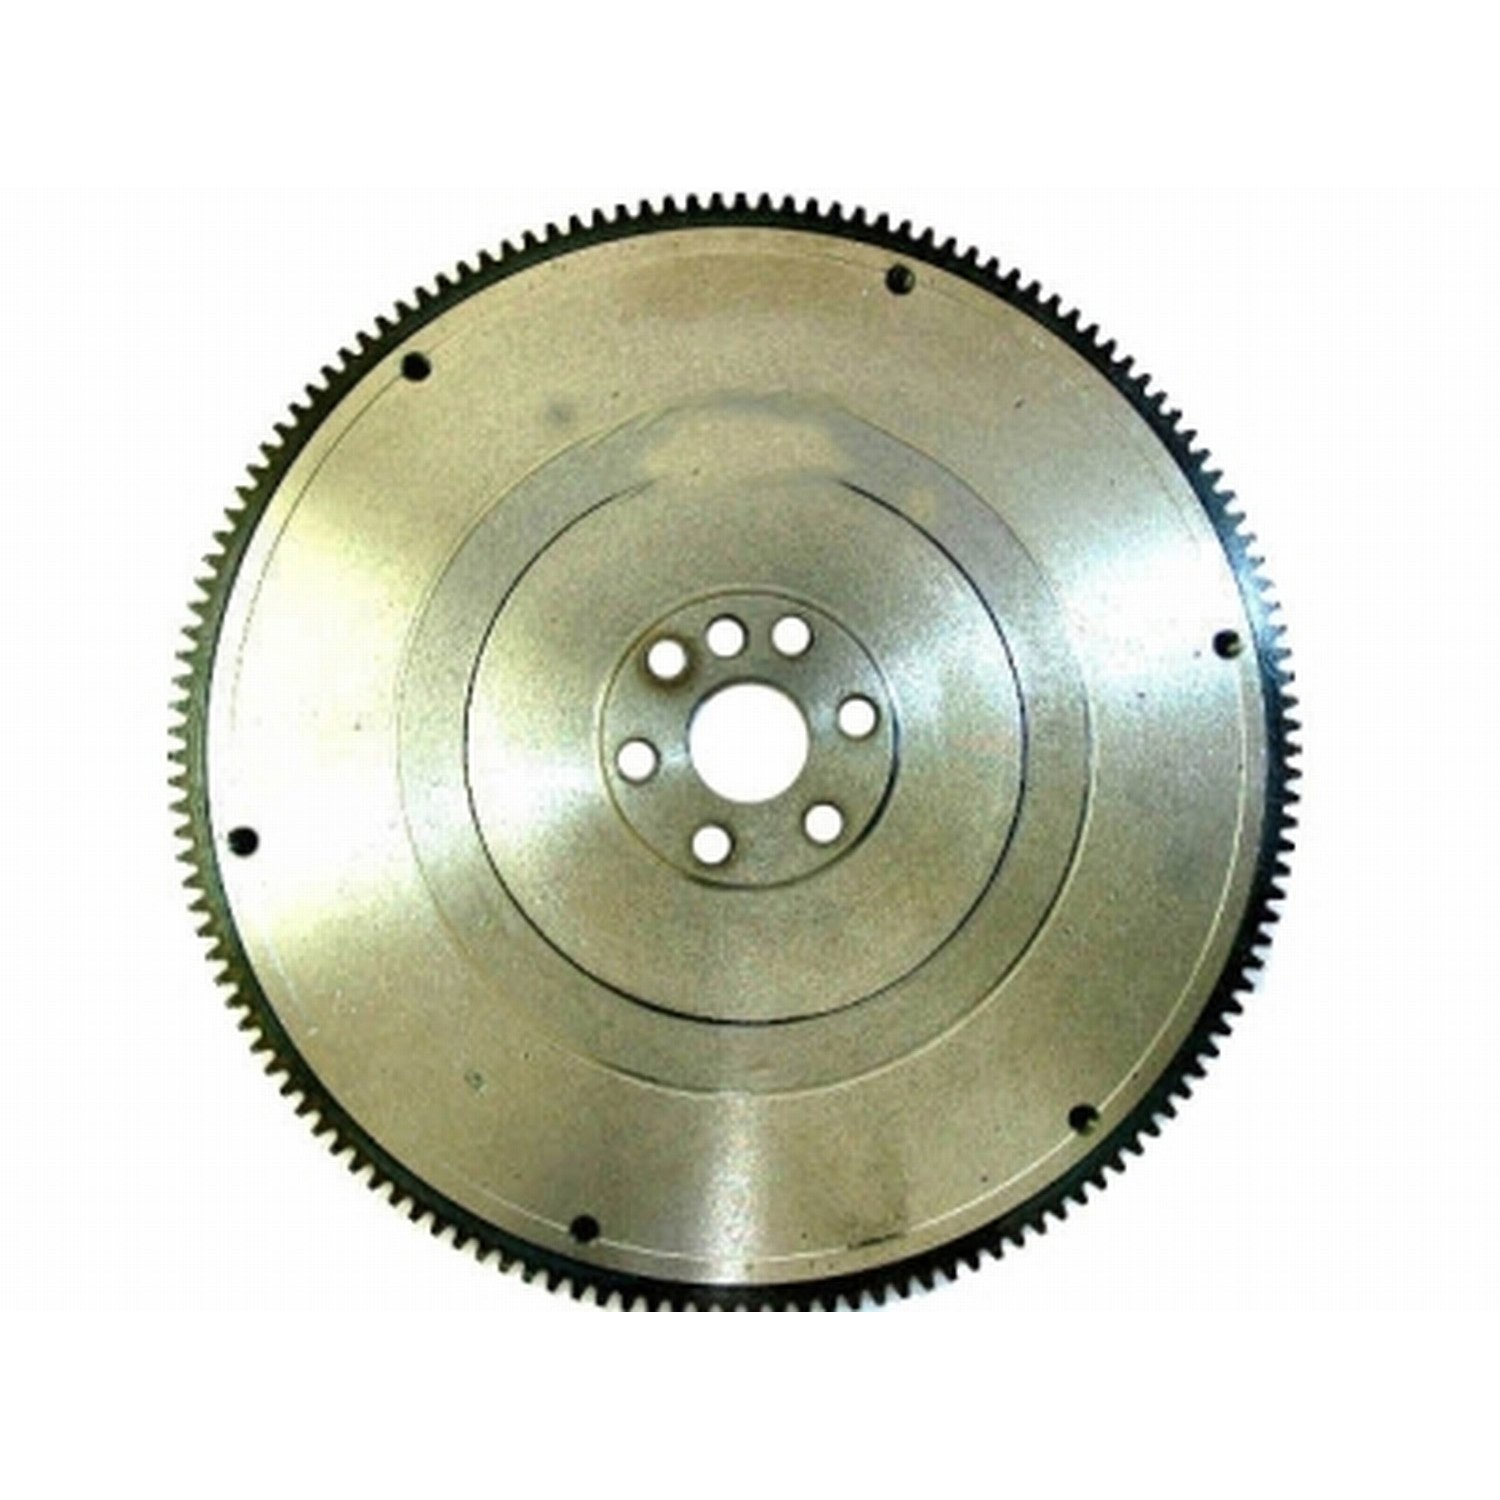 1998 Pontiac Grand Am Clutch Flywheel Rz 167500